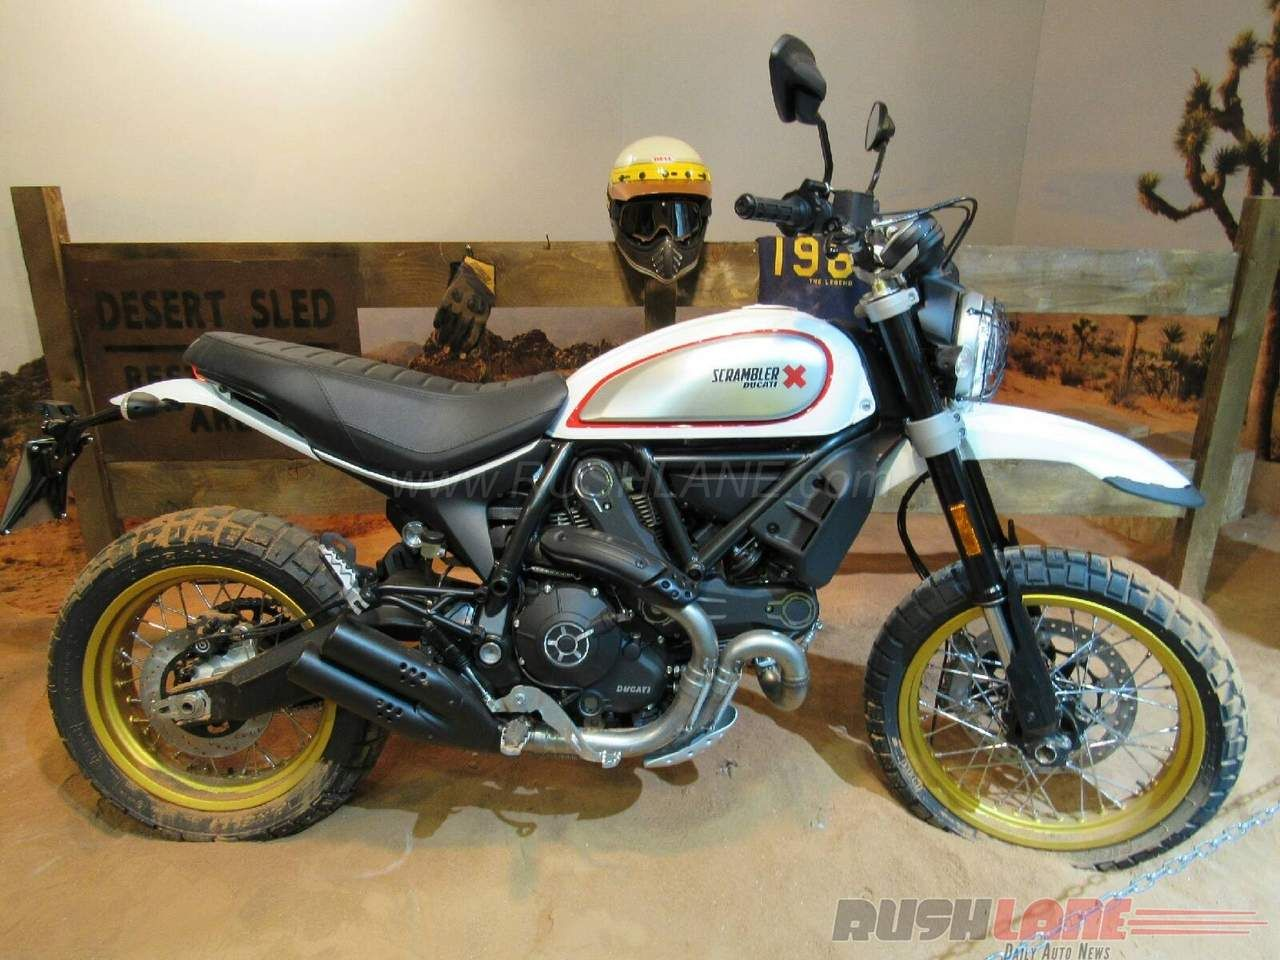 ducati scrambler desert sled eicma photos 1280 960. Black Bedroom Furniture Sets. Home Design Ideas